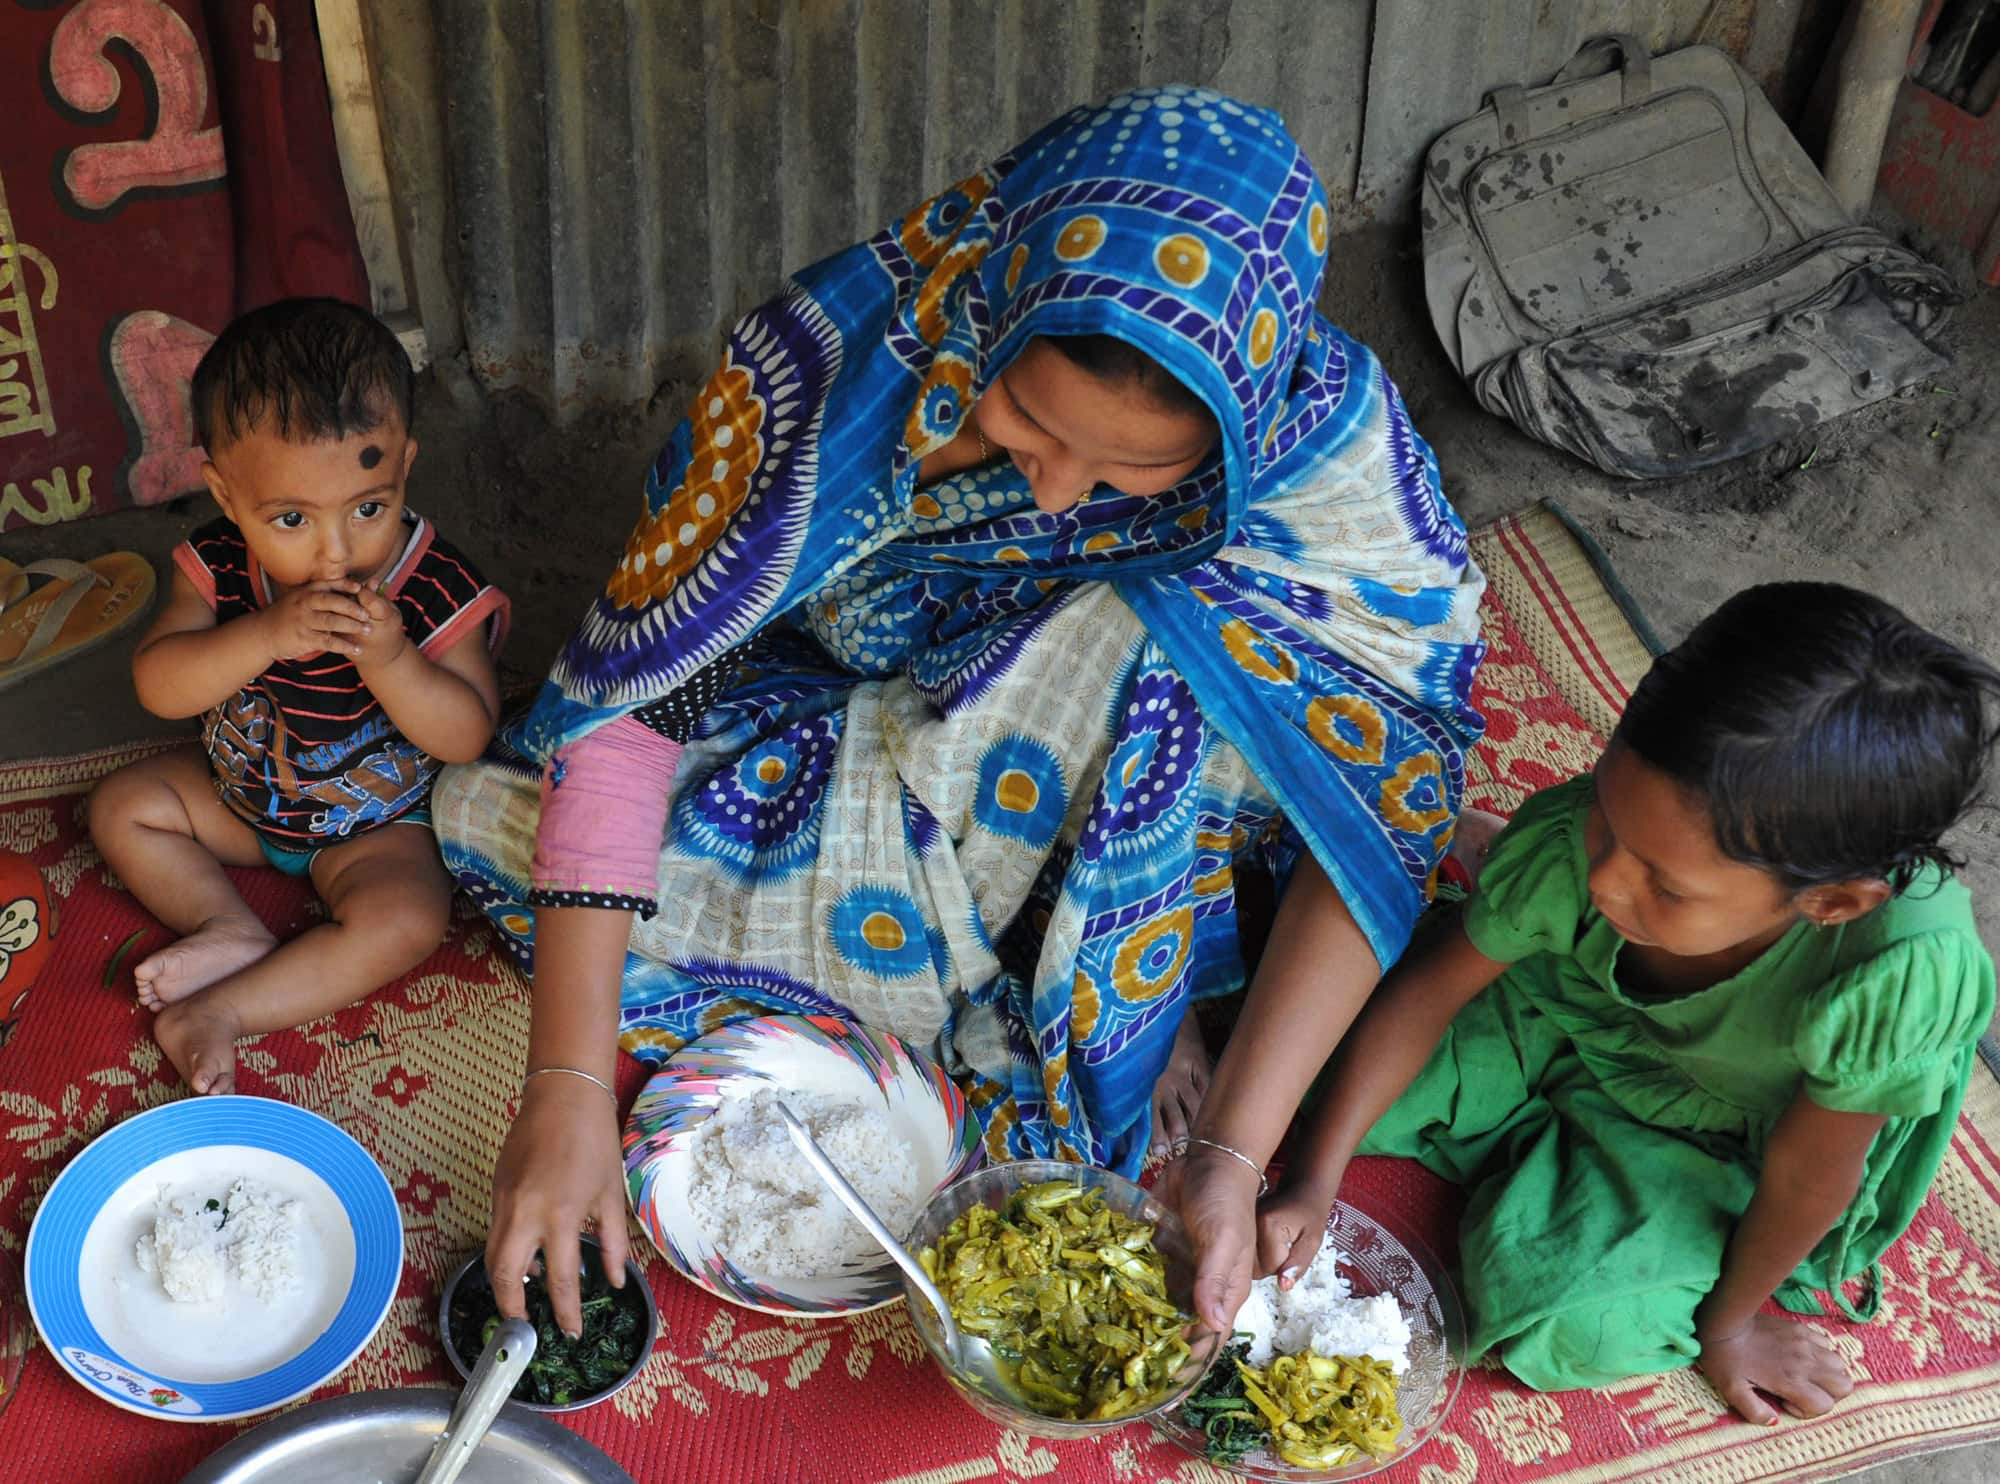 A Bangladeshi mother feeding her children nutrient-rich small fish and leafy vegetables. Photo by Finn Thilsted.